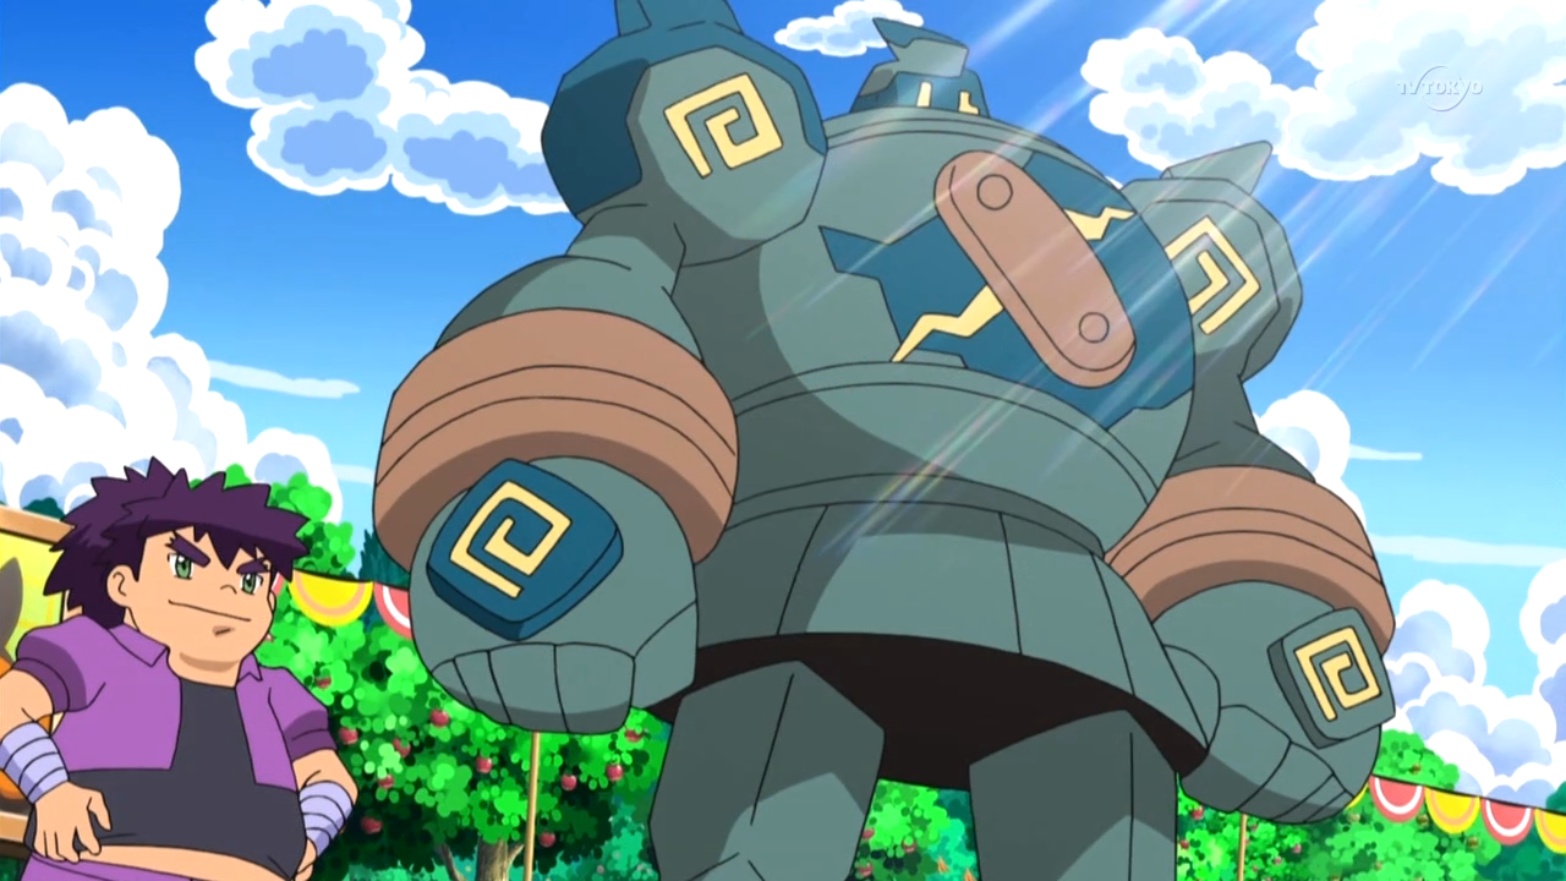 rodney s golurk pokémon wiki fandom powered by wikia